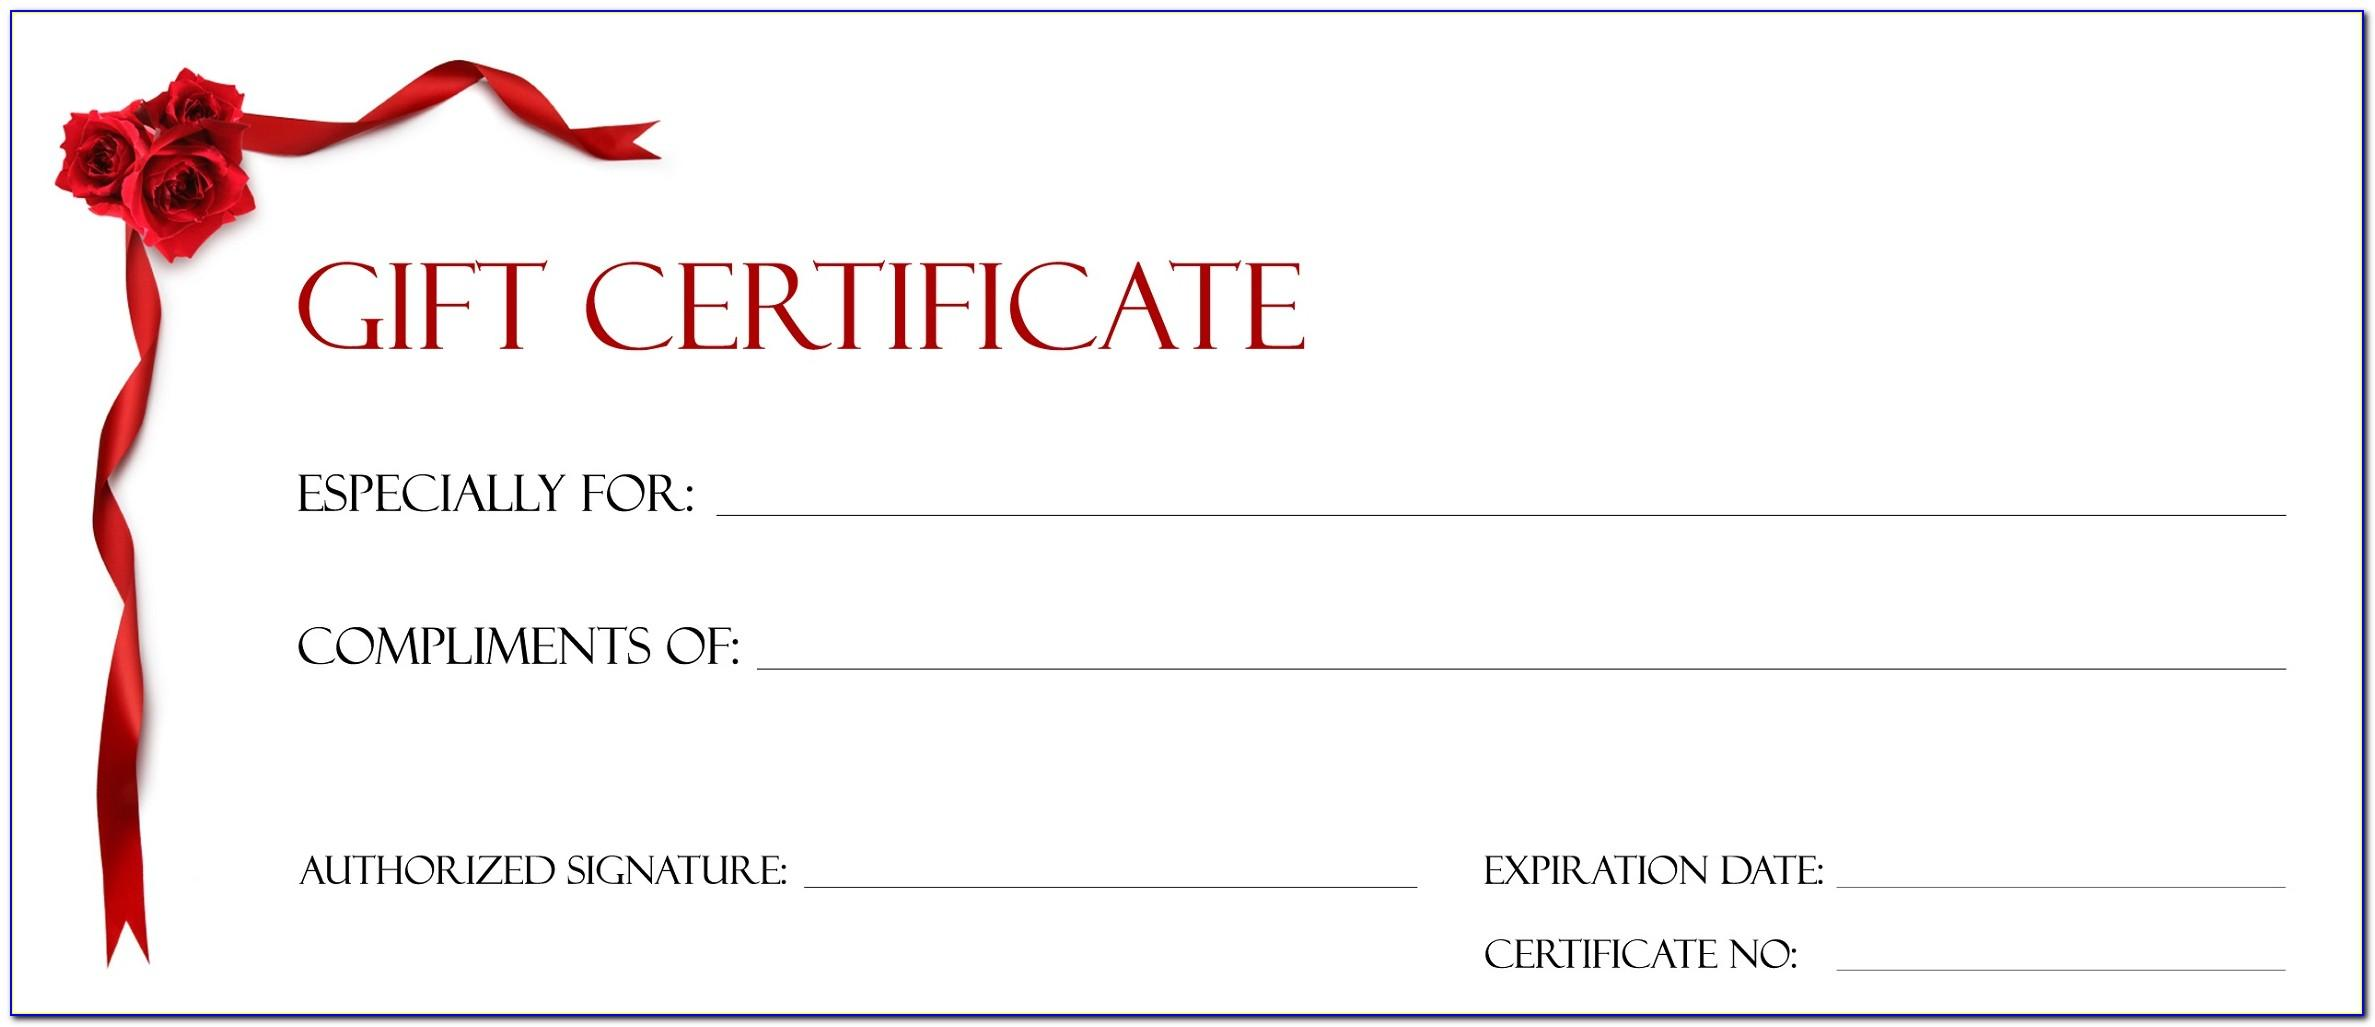 Free Template To Make A Gift Certificate